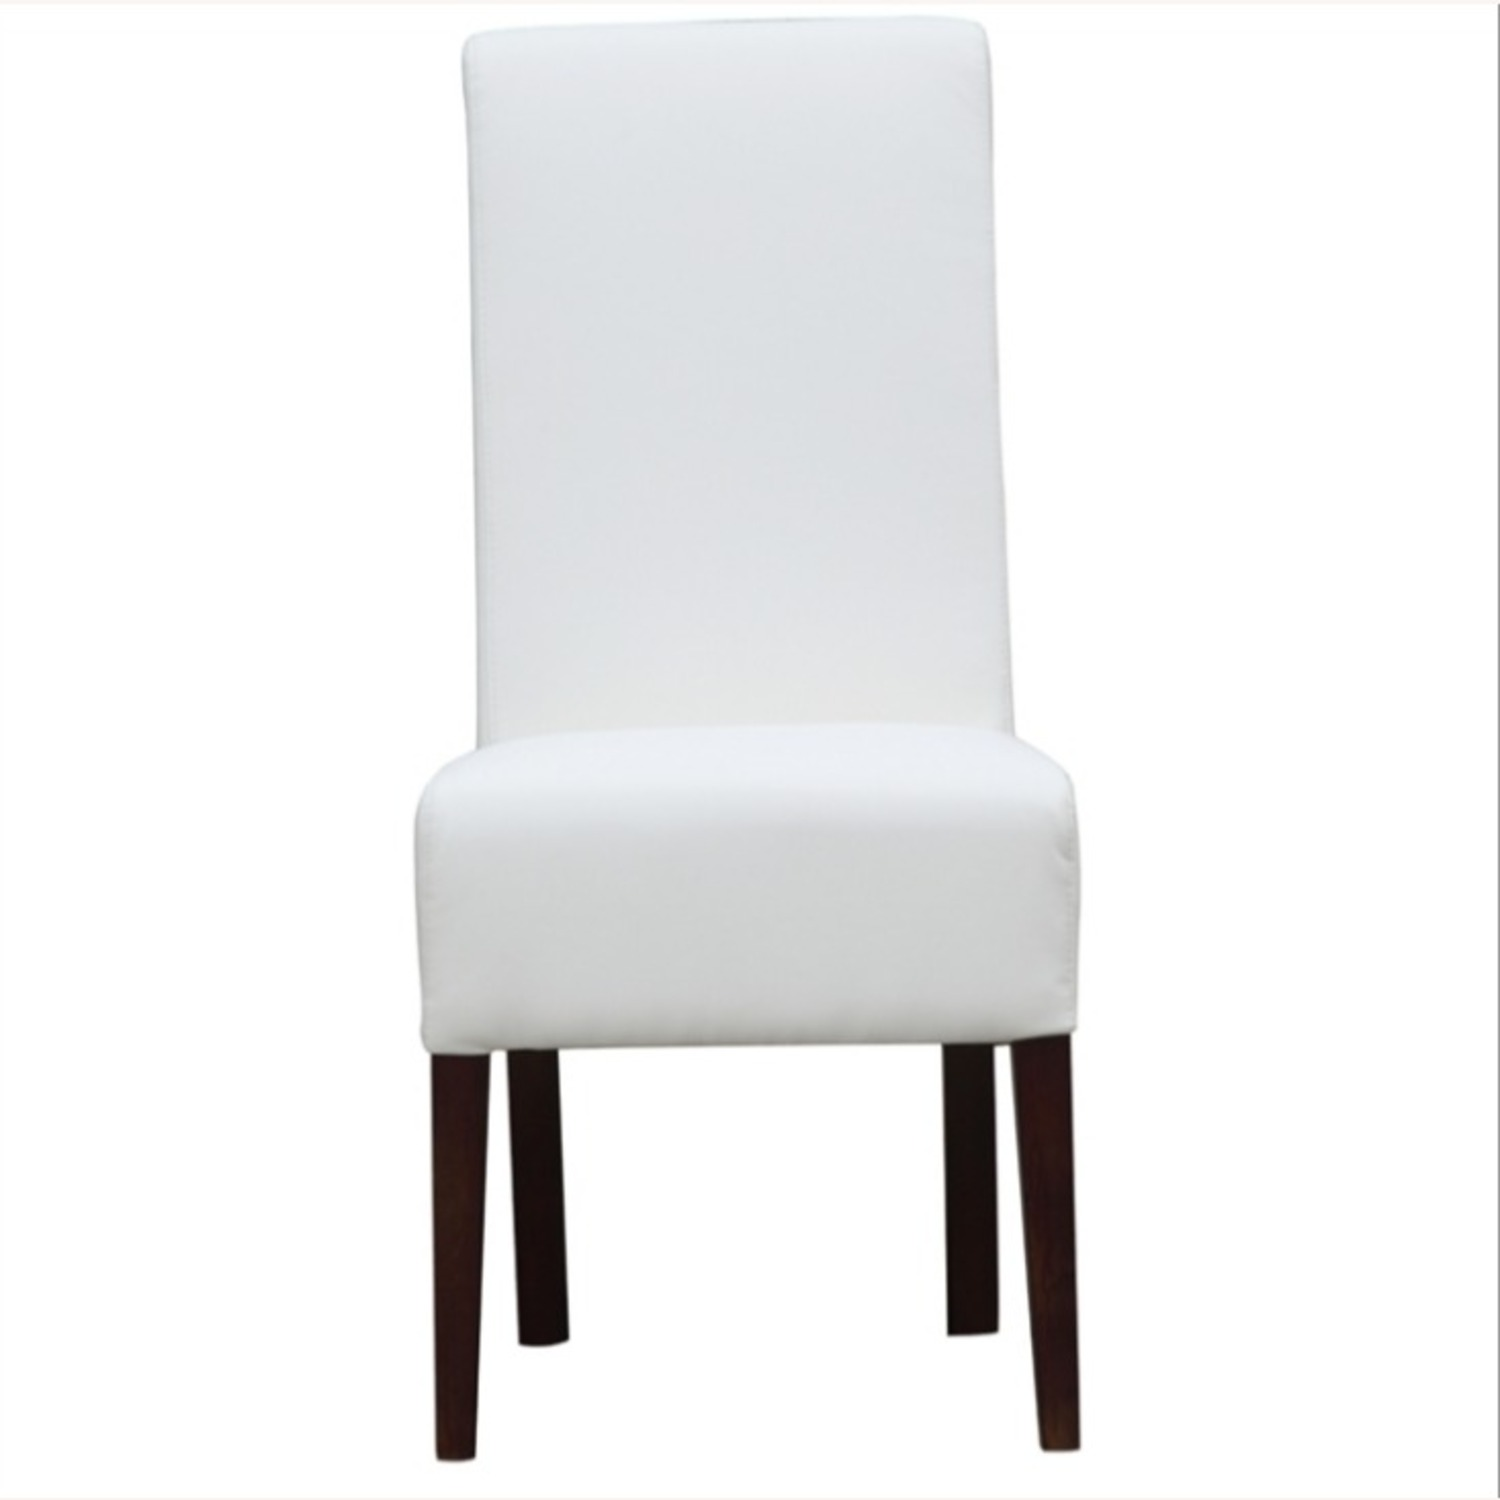 Modern Dining Chair In White PU Leather - image-5